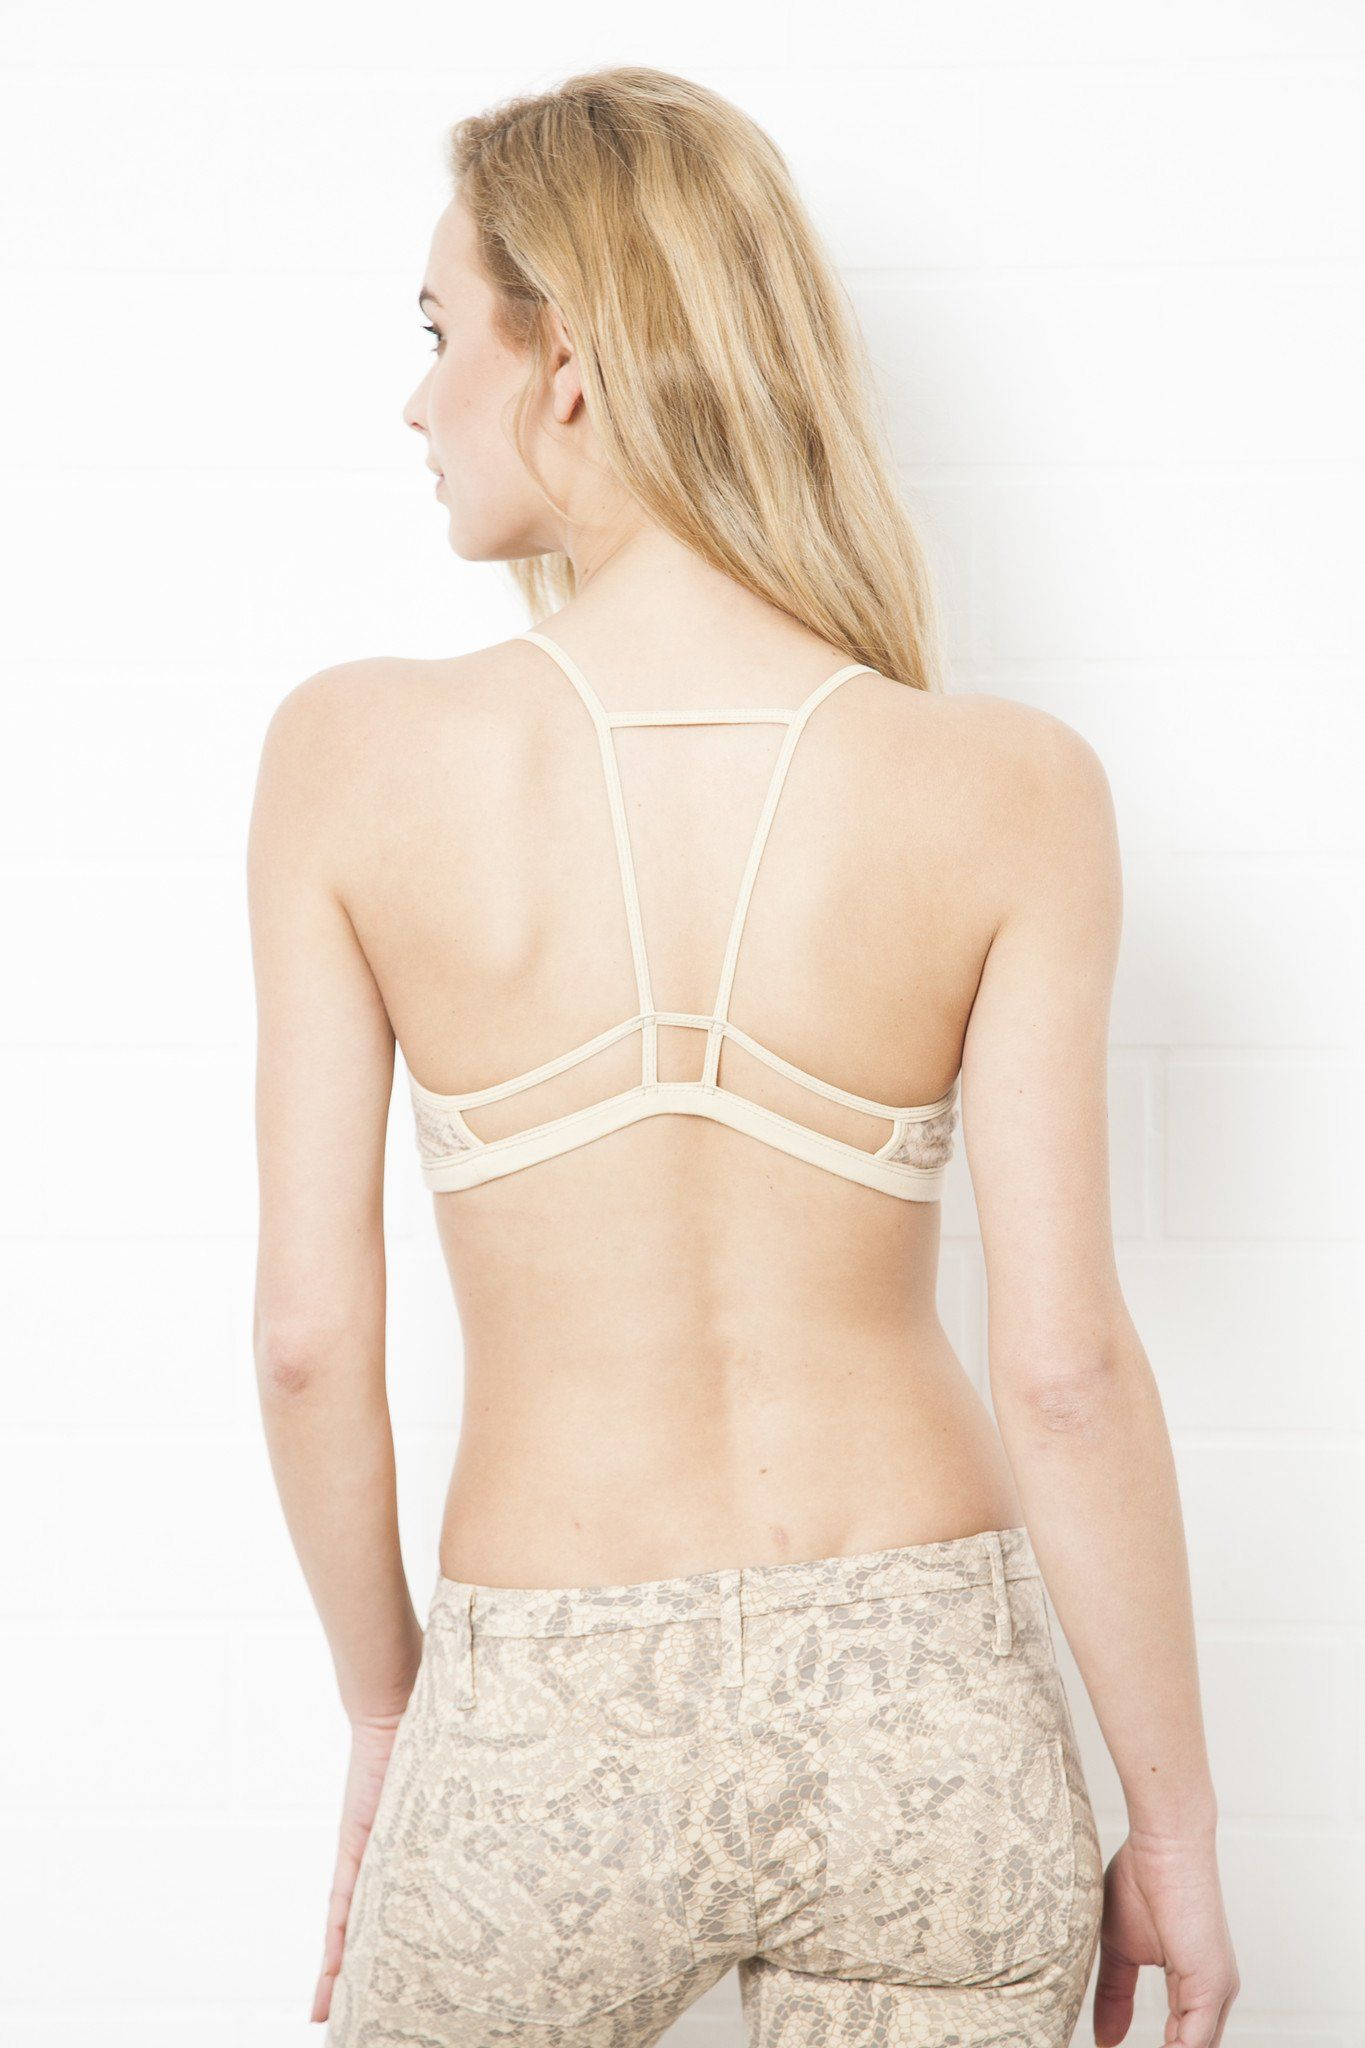 Backless bra for wedding dress  String Bra Top  Cream Dragon Print A simple and super comfortable